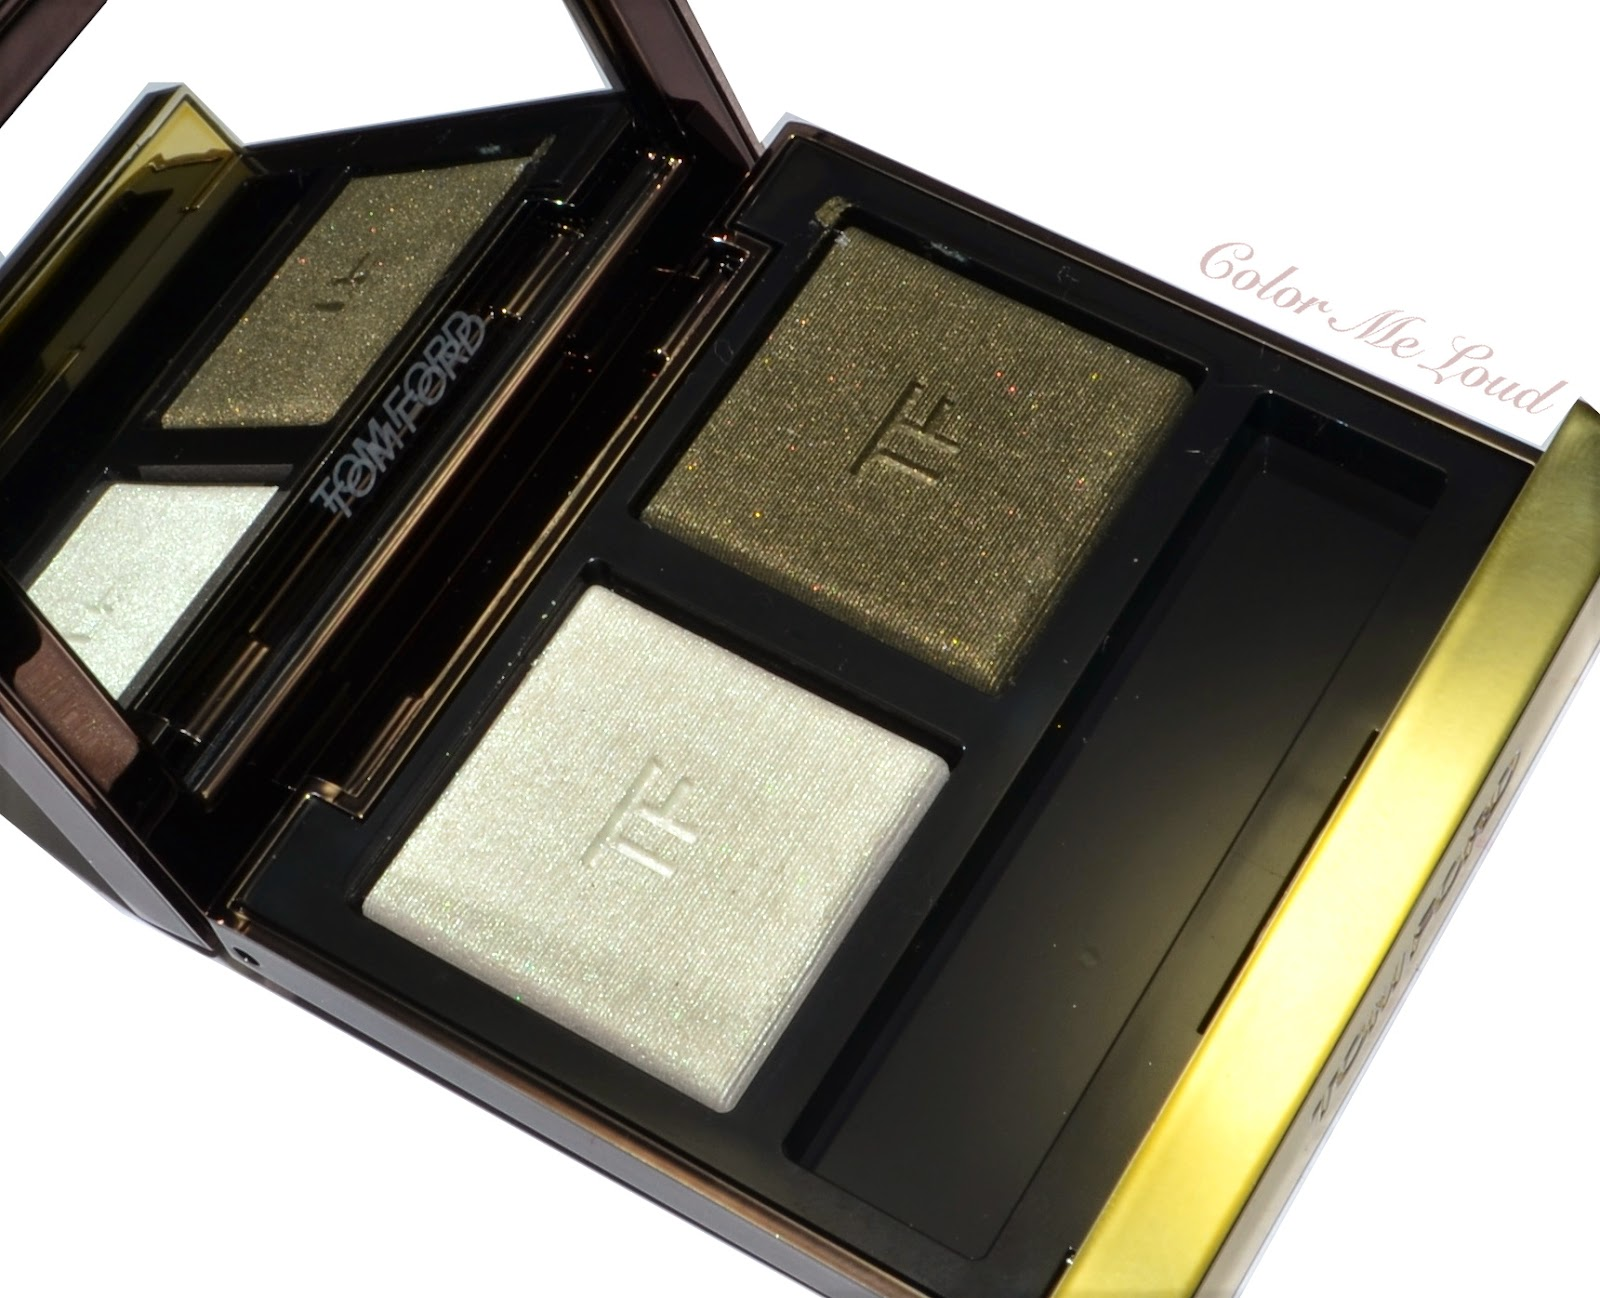 998c9a1362c42 Tom Ford Eye Color Duo  02 Raw Jade